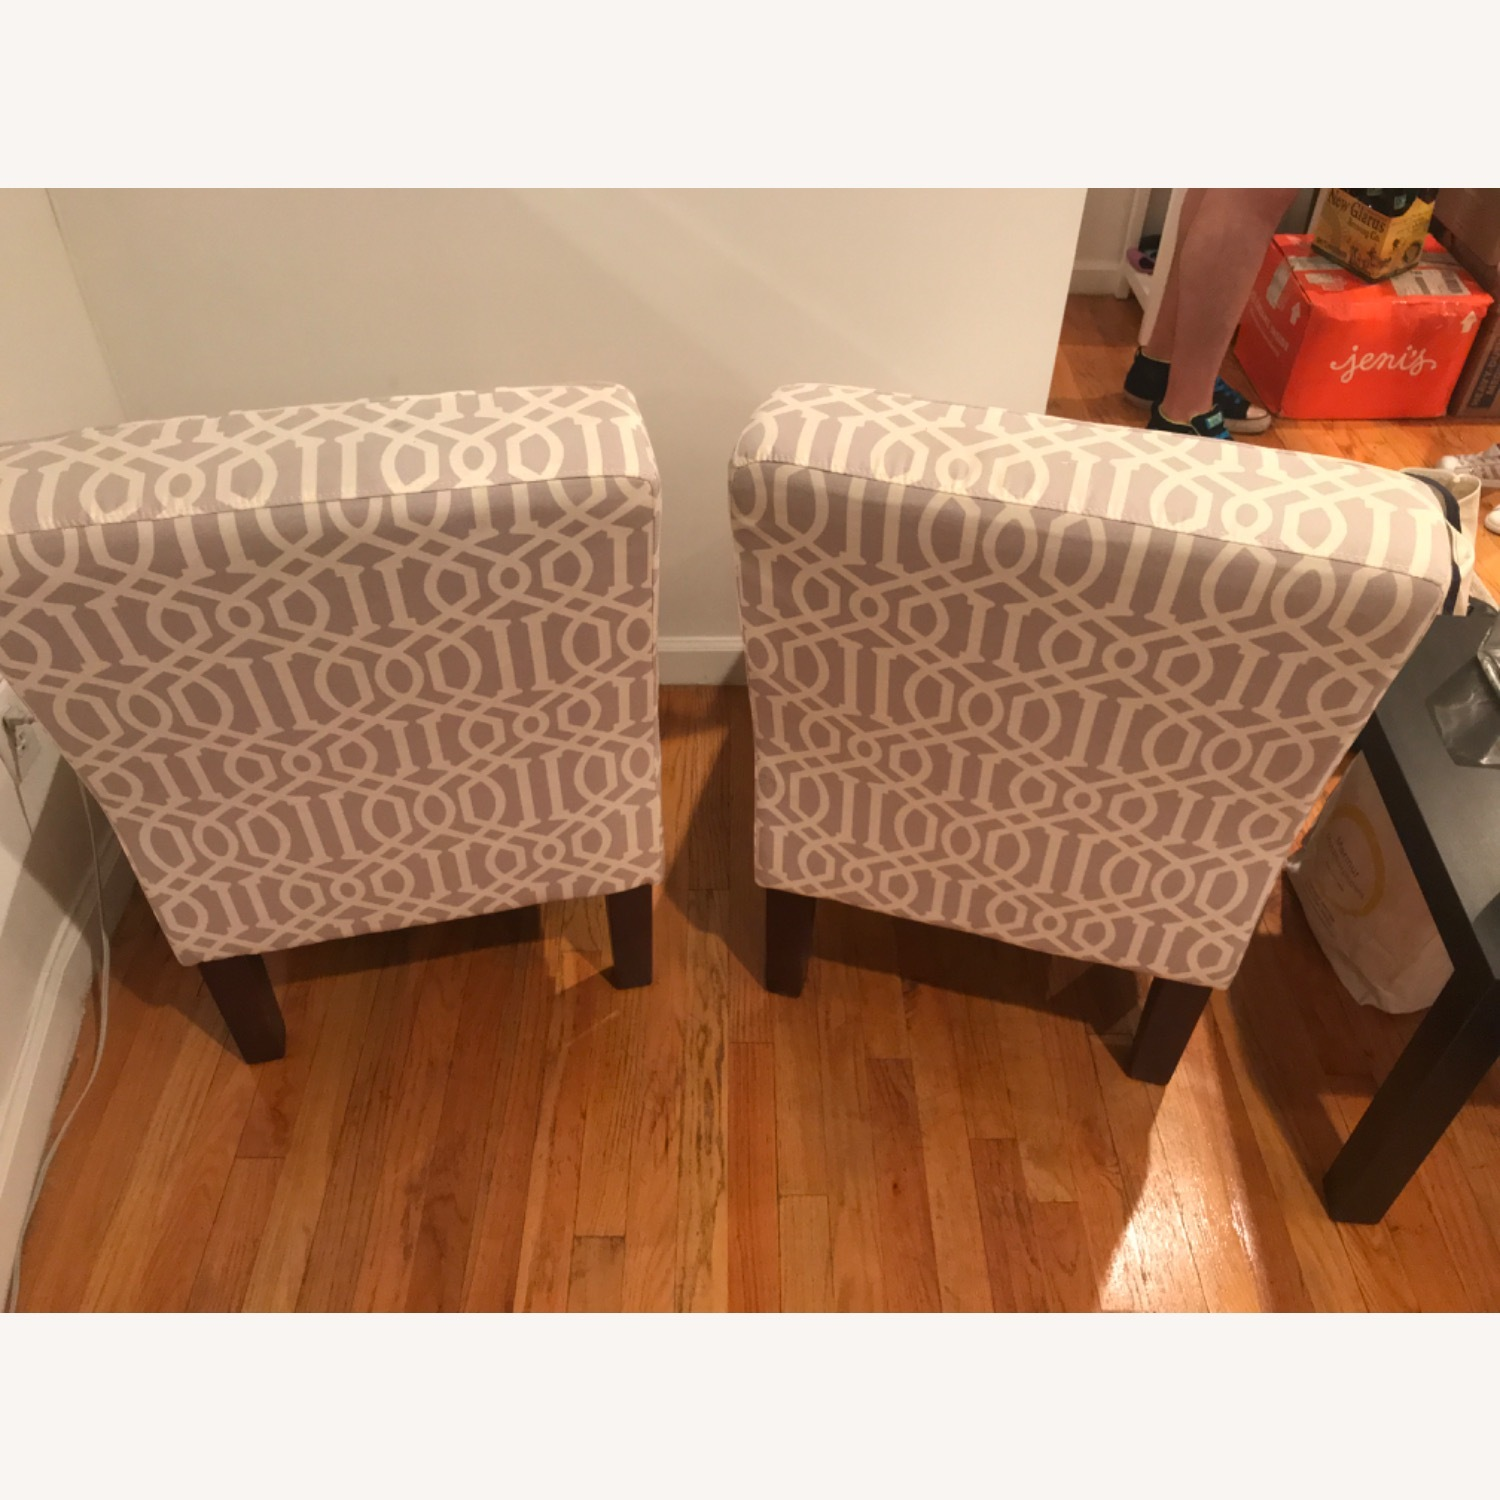 Lovely Conversational Accent Chairs - image-2